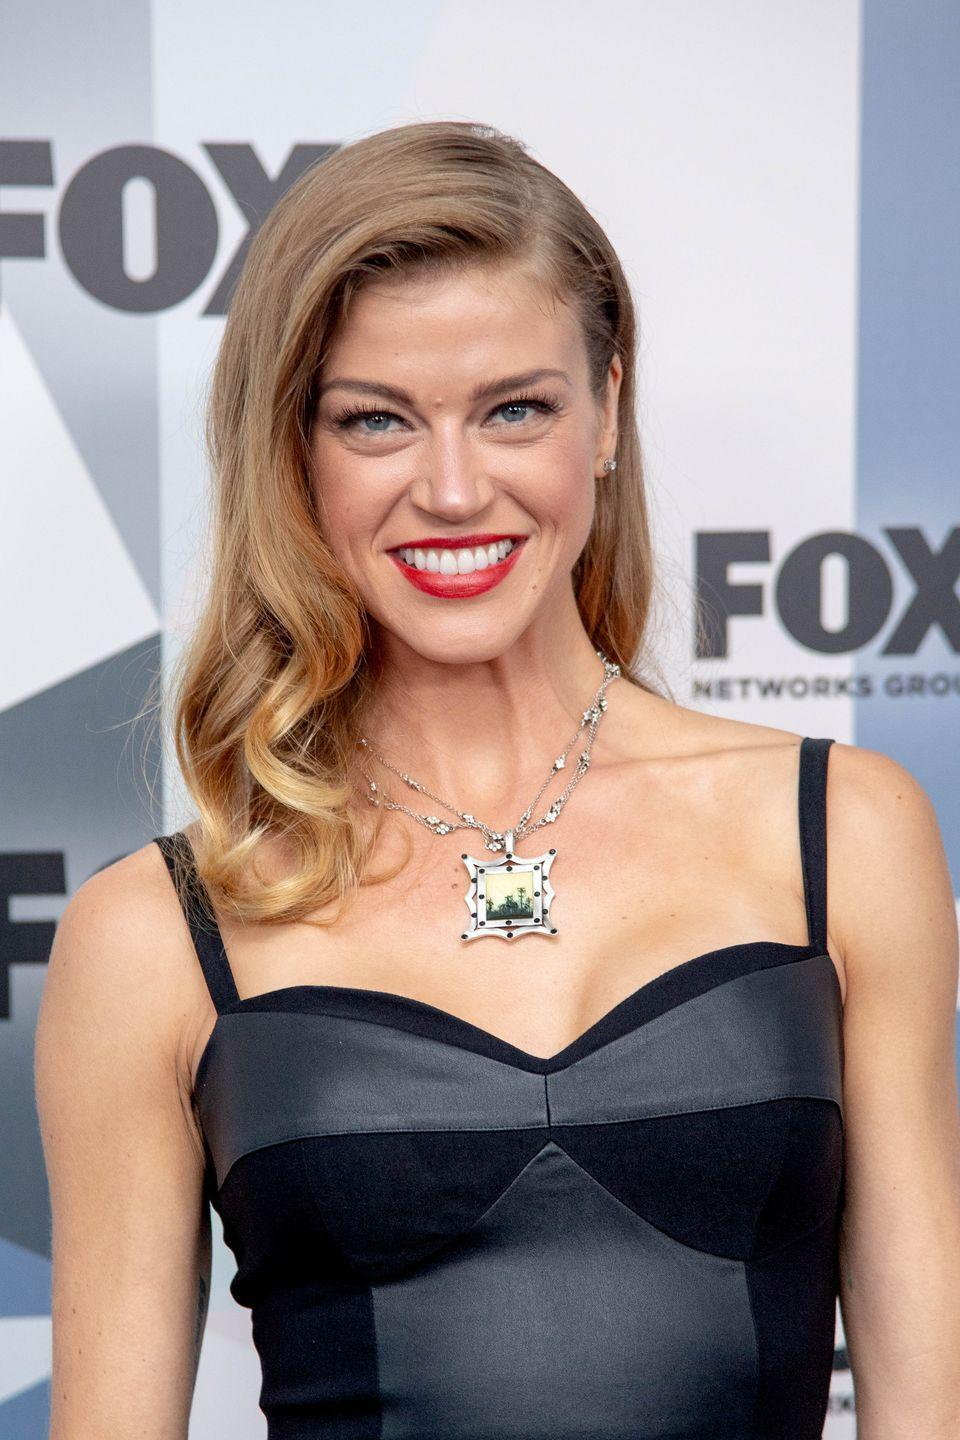 <p>Currently starring as Commander Kelly Grayson in <em>The Orville</em>, Palicki has starred in some major blockbusters, including <em>John Wick</em> and <em>G.I. Joe: Retaliation</em>. She also had a starring role in <em>Agents of S.H.I.E.L.D. </em>until she left the series in 2016. Palicki married her Orville co-star, Scott Grimes, in May 2019. </p>